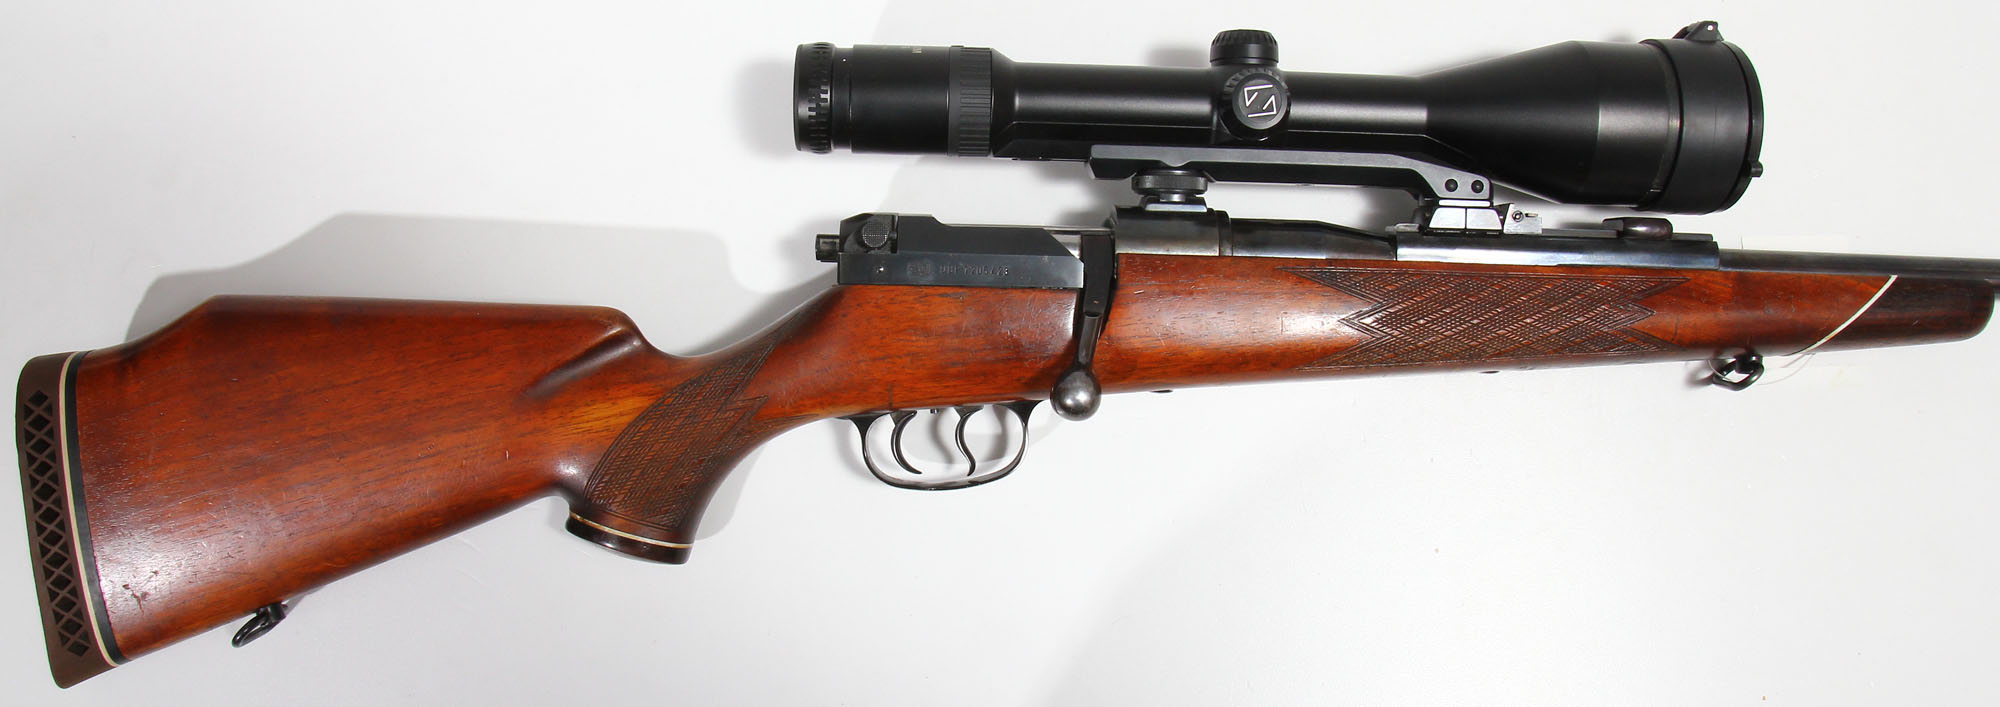 The telescoping action of the Mauser 66 requires some variations in mounting a telescopic sight. It isn't difficult but does require specially designed mounts. (Picture courtesy waffen-faude.de)